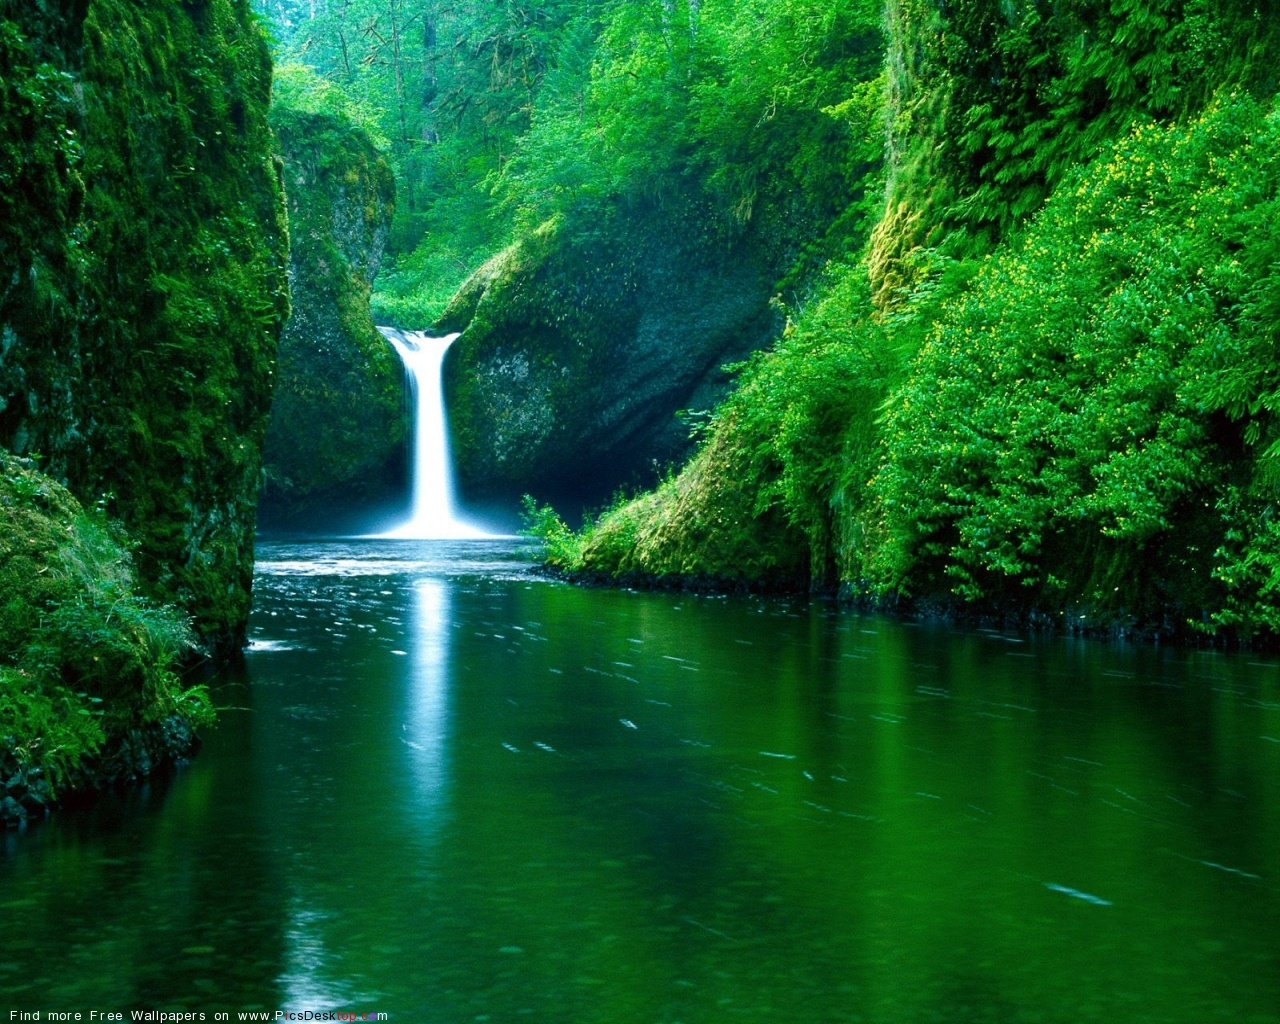 Picsdesktop nature summer background waterfall wallpaper desktop